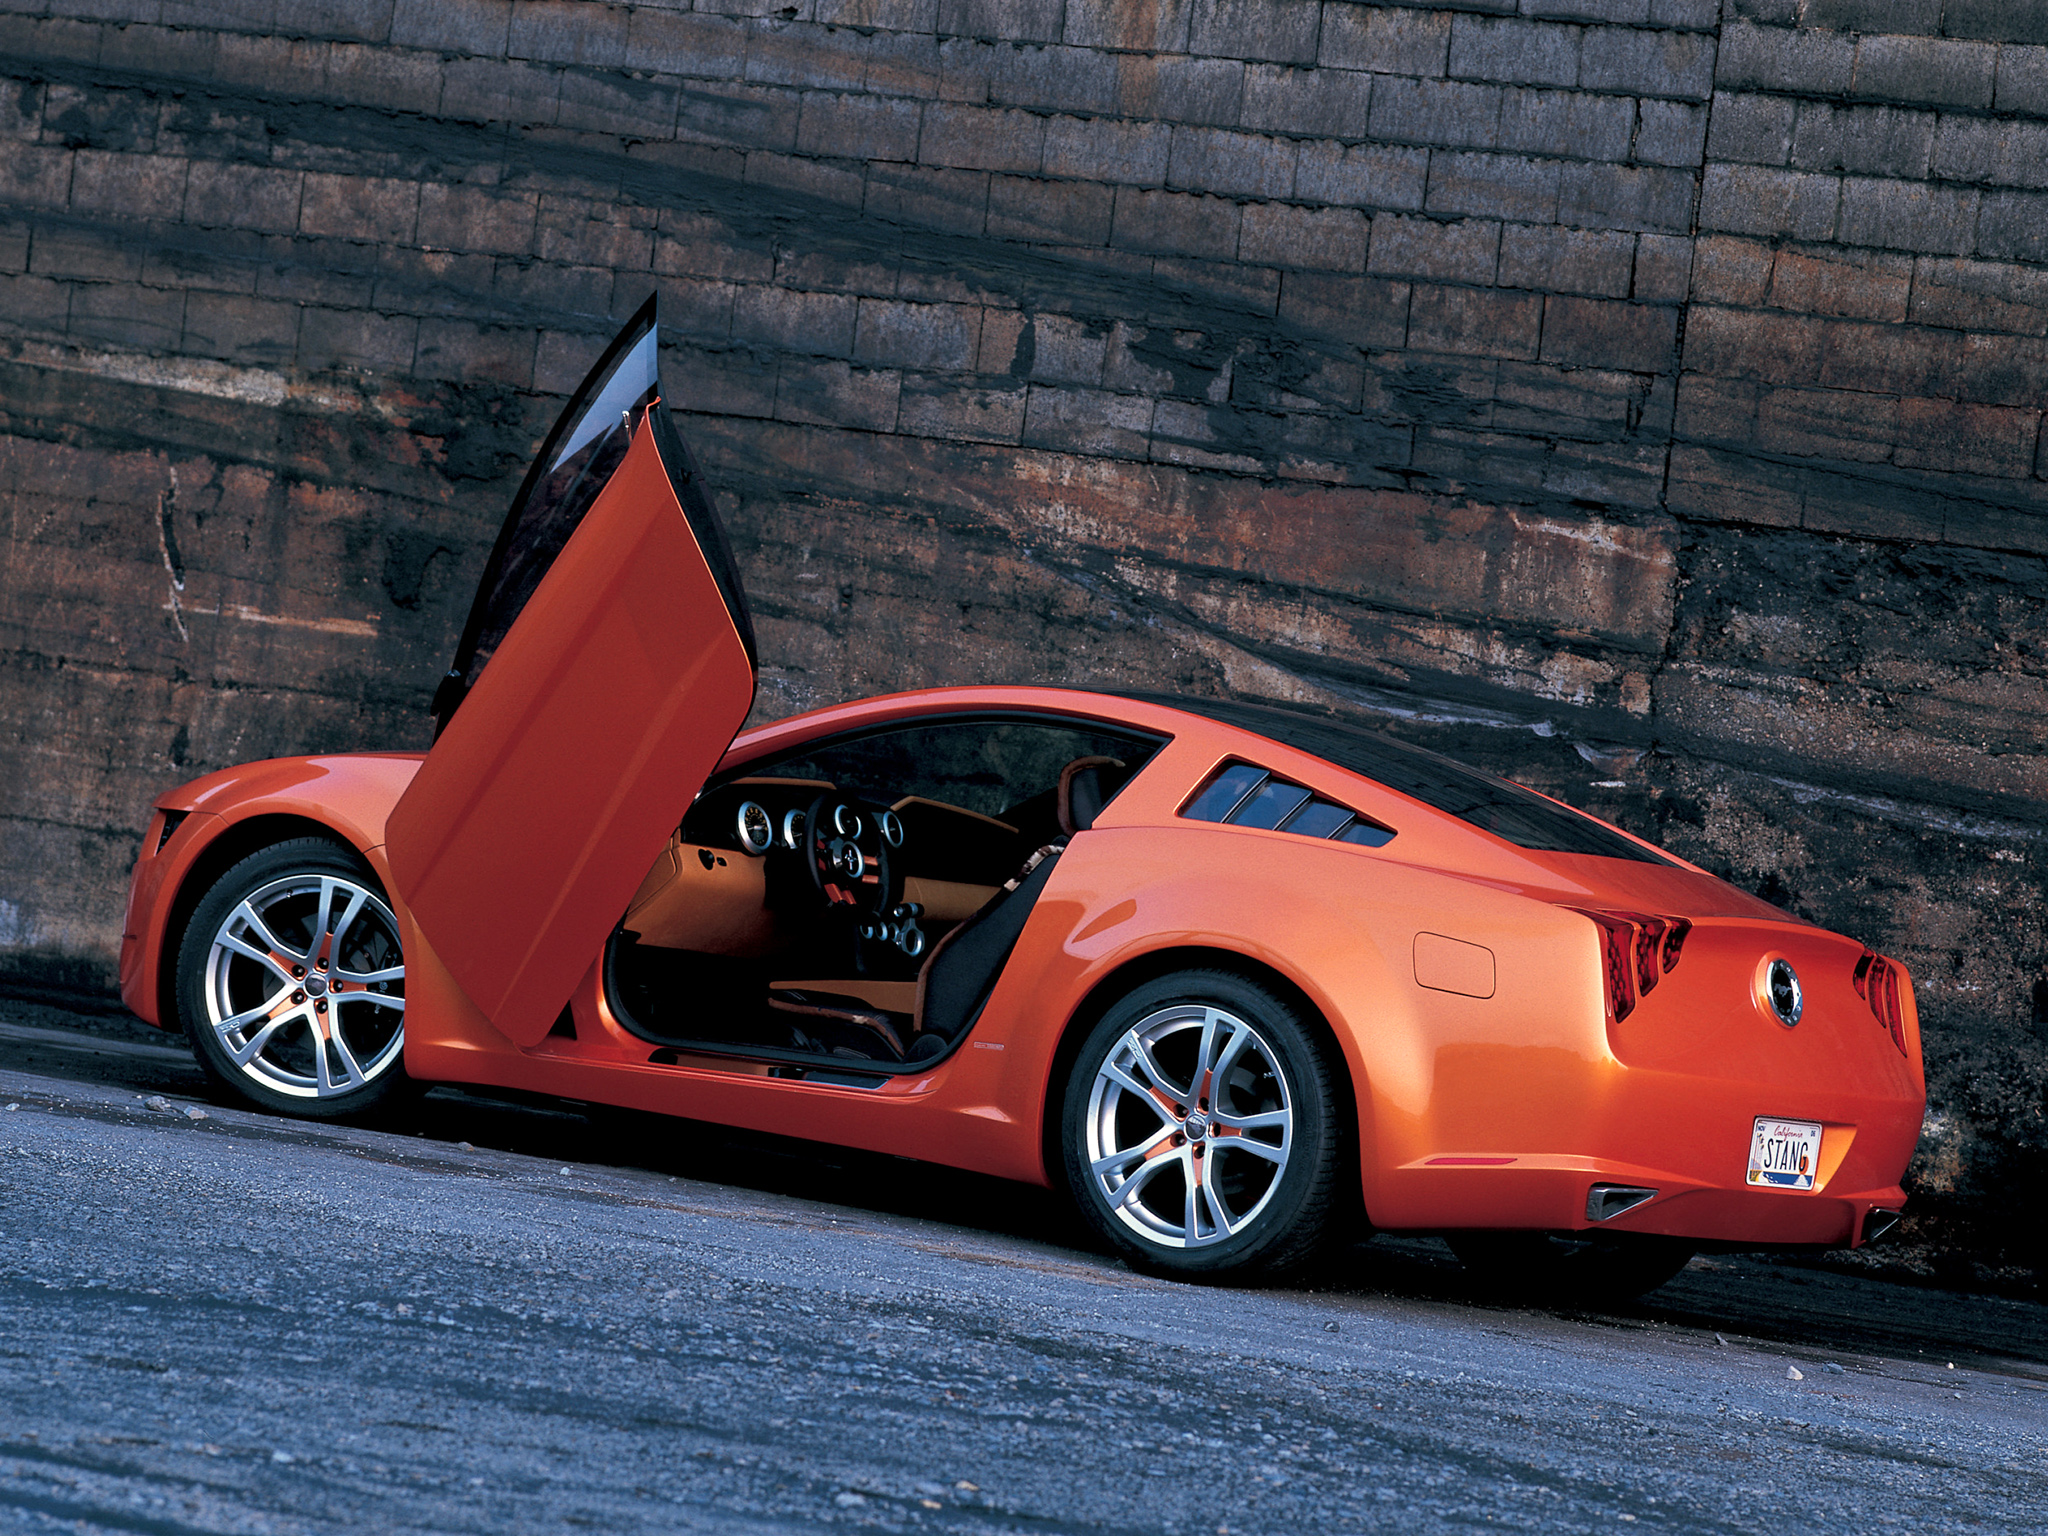 2006 Ford Mustang Giugiaro Concept photo - 1